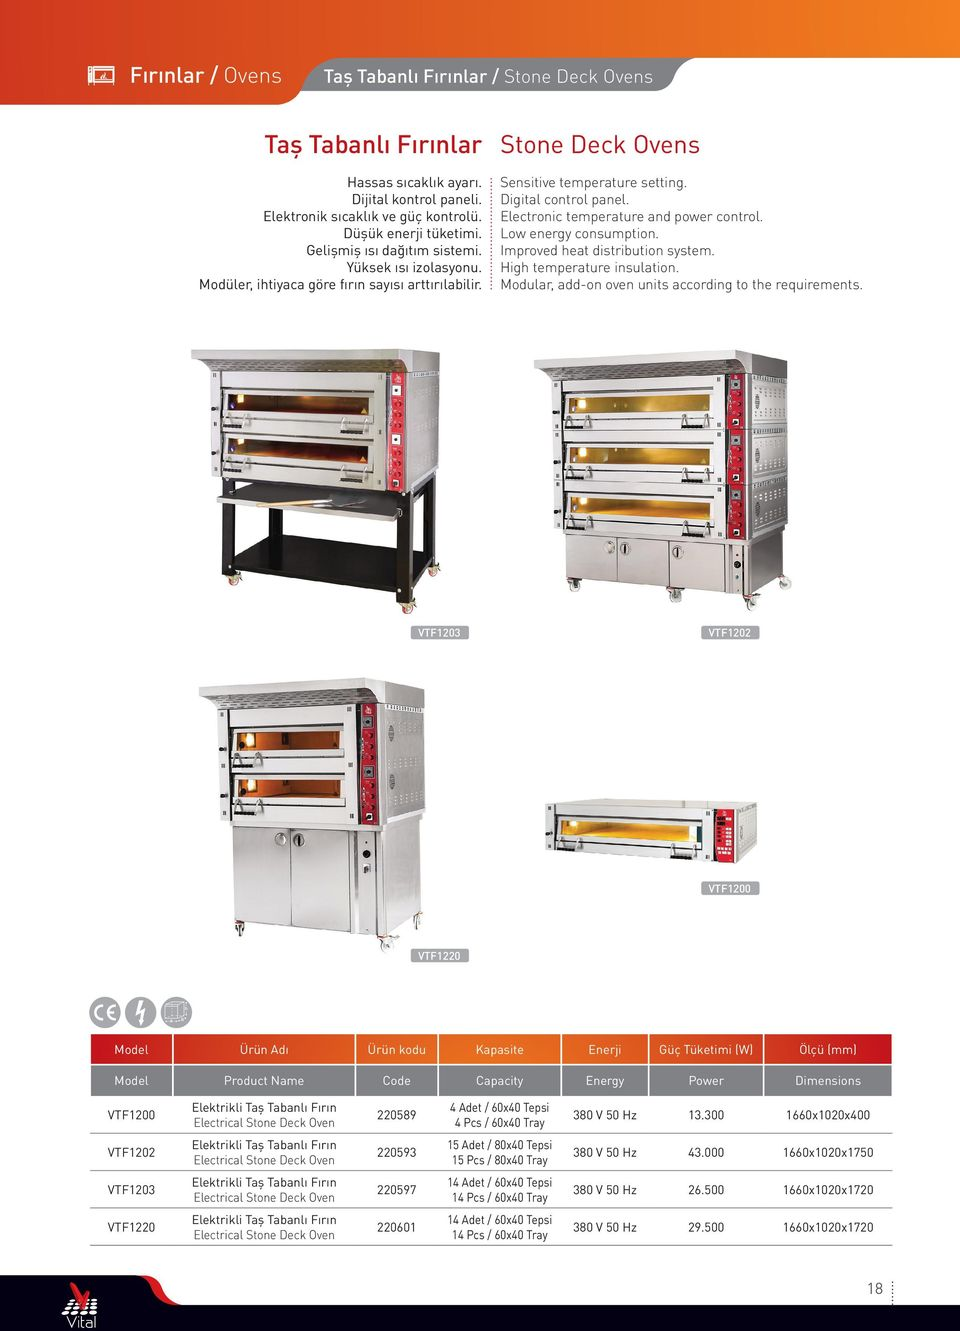 Electronic temperature and power control. Low energy consumption. Improved heat distribution system. High temperature insulation. Modular, addon oven units according to the requirements.